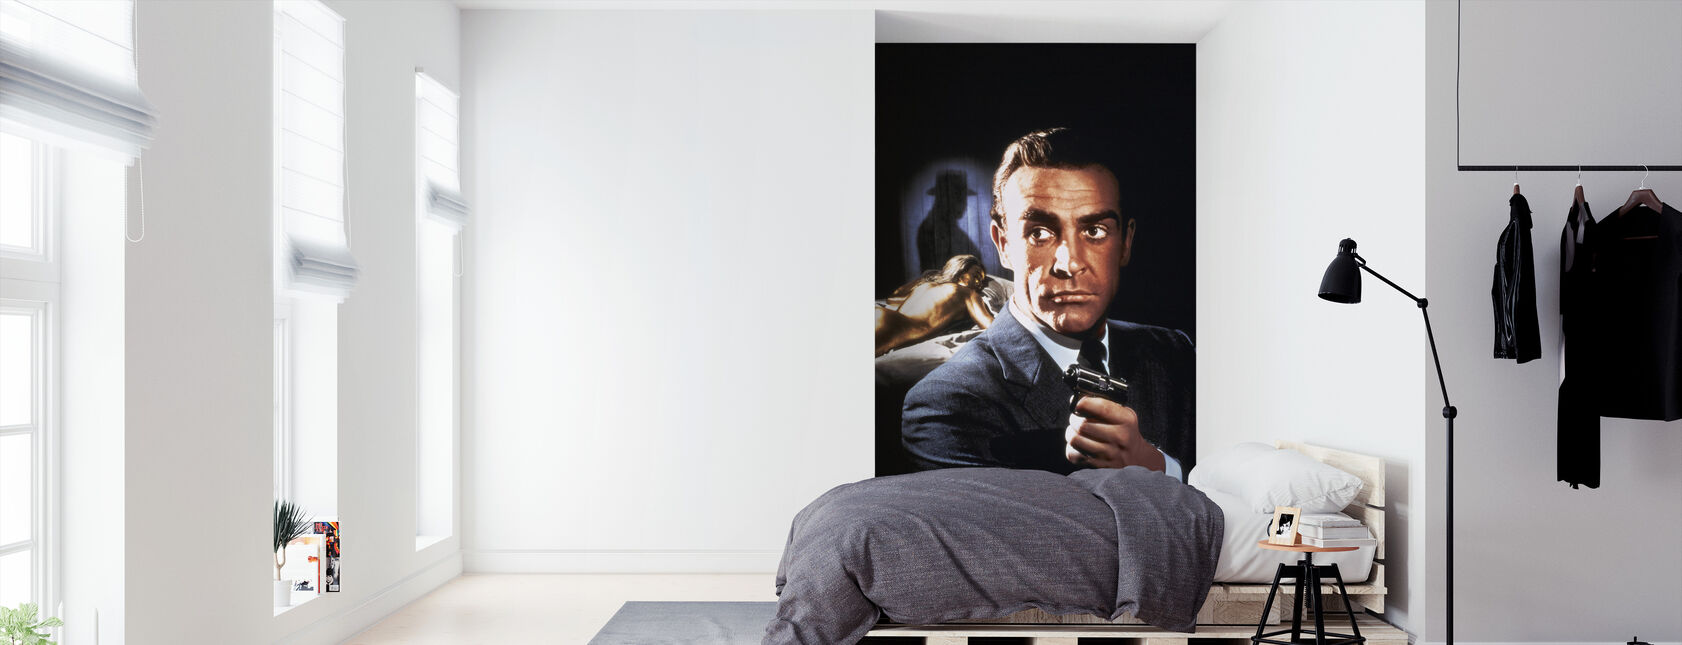 Sean Connery en 007 Goldfinger - Behang - Slaapkamer